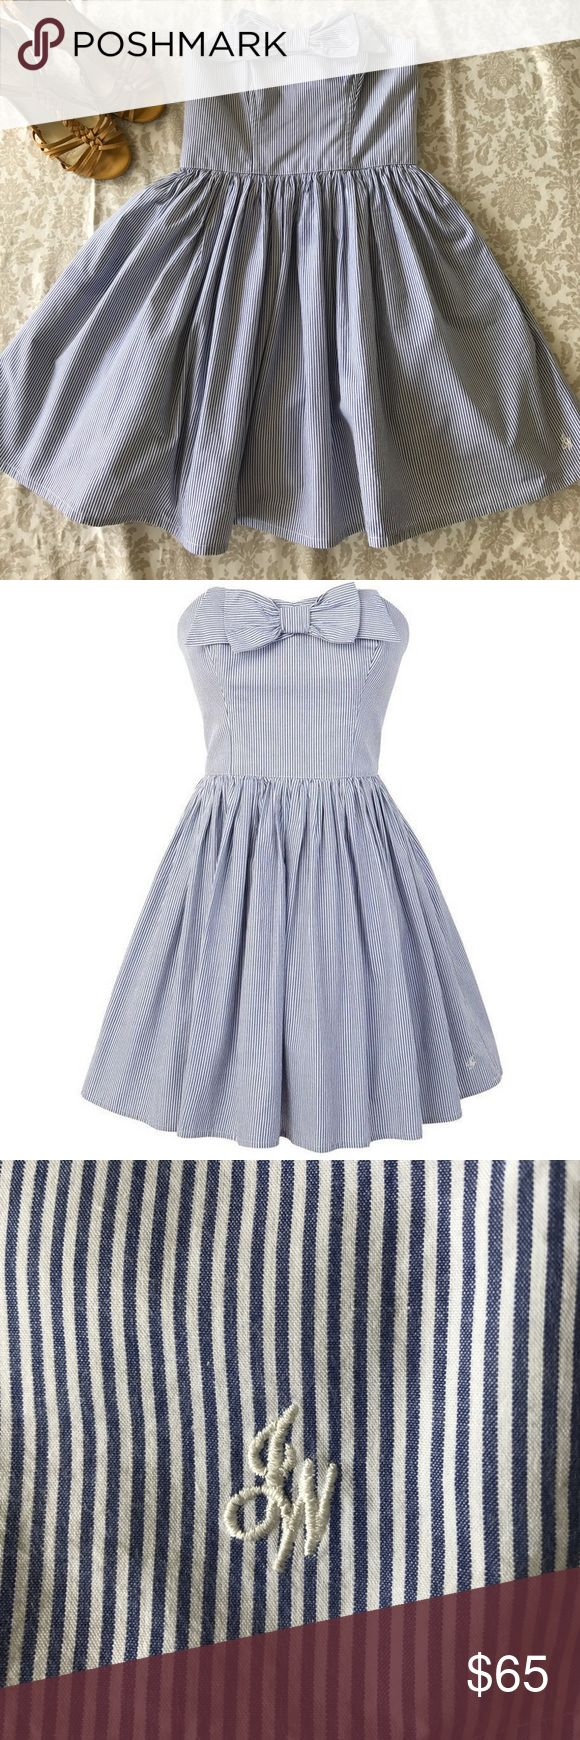 Jack Wills Hemsley Strapless Fine Stripe Bow Dress Whatever you have planned, the Hemsley dress is perfect for all your summer occasions. This strapless style has a cute bow at the neckline, boning in both front and back of bodice, 2 pockets, gathering at waist, and invisible back zipper with hook/eye closure. A ruffled white slip is attached and gives the skirt more body. Very slight discoloration shown in pictures. So well made! Jack Wills Dresses Strapless